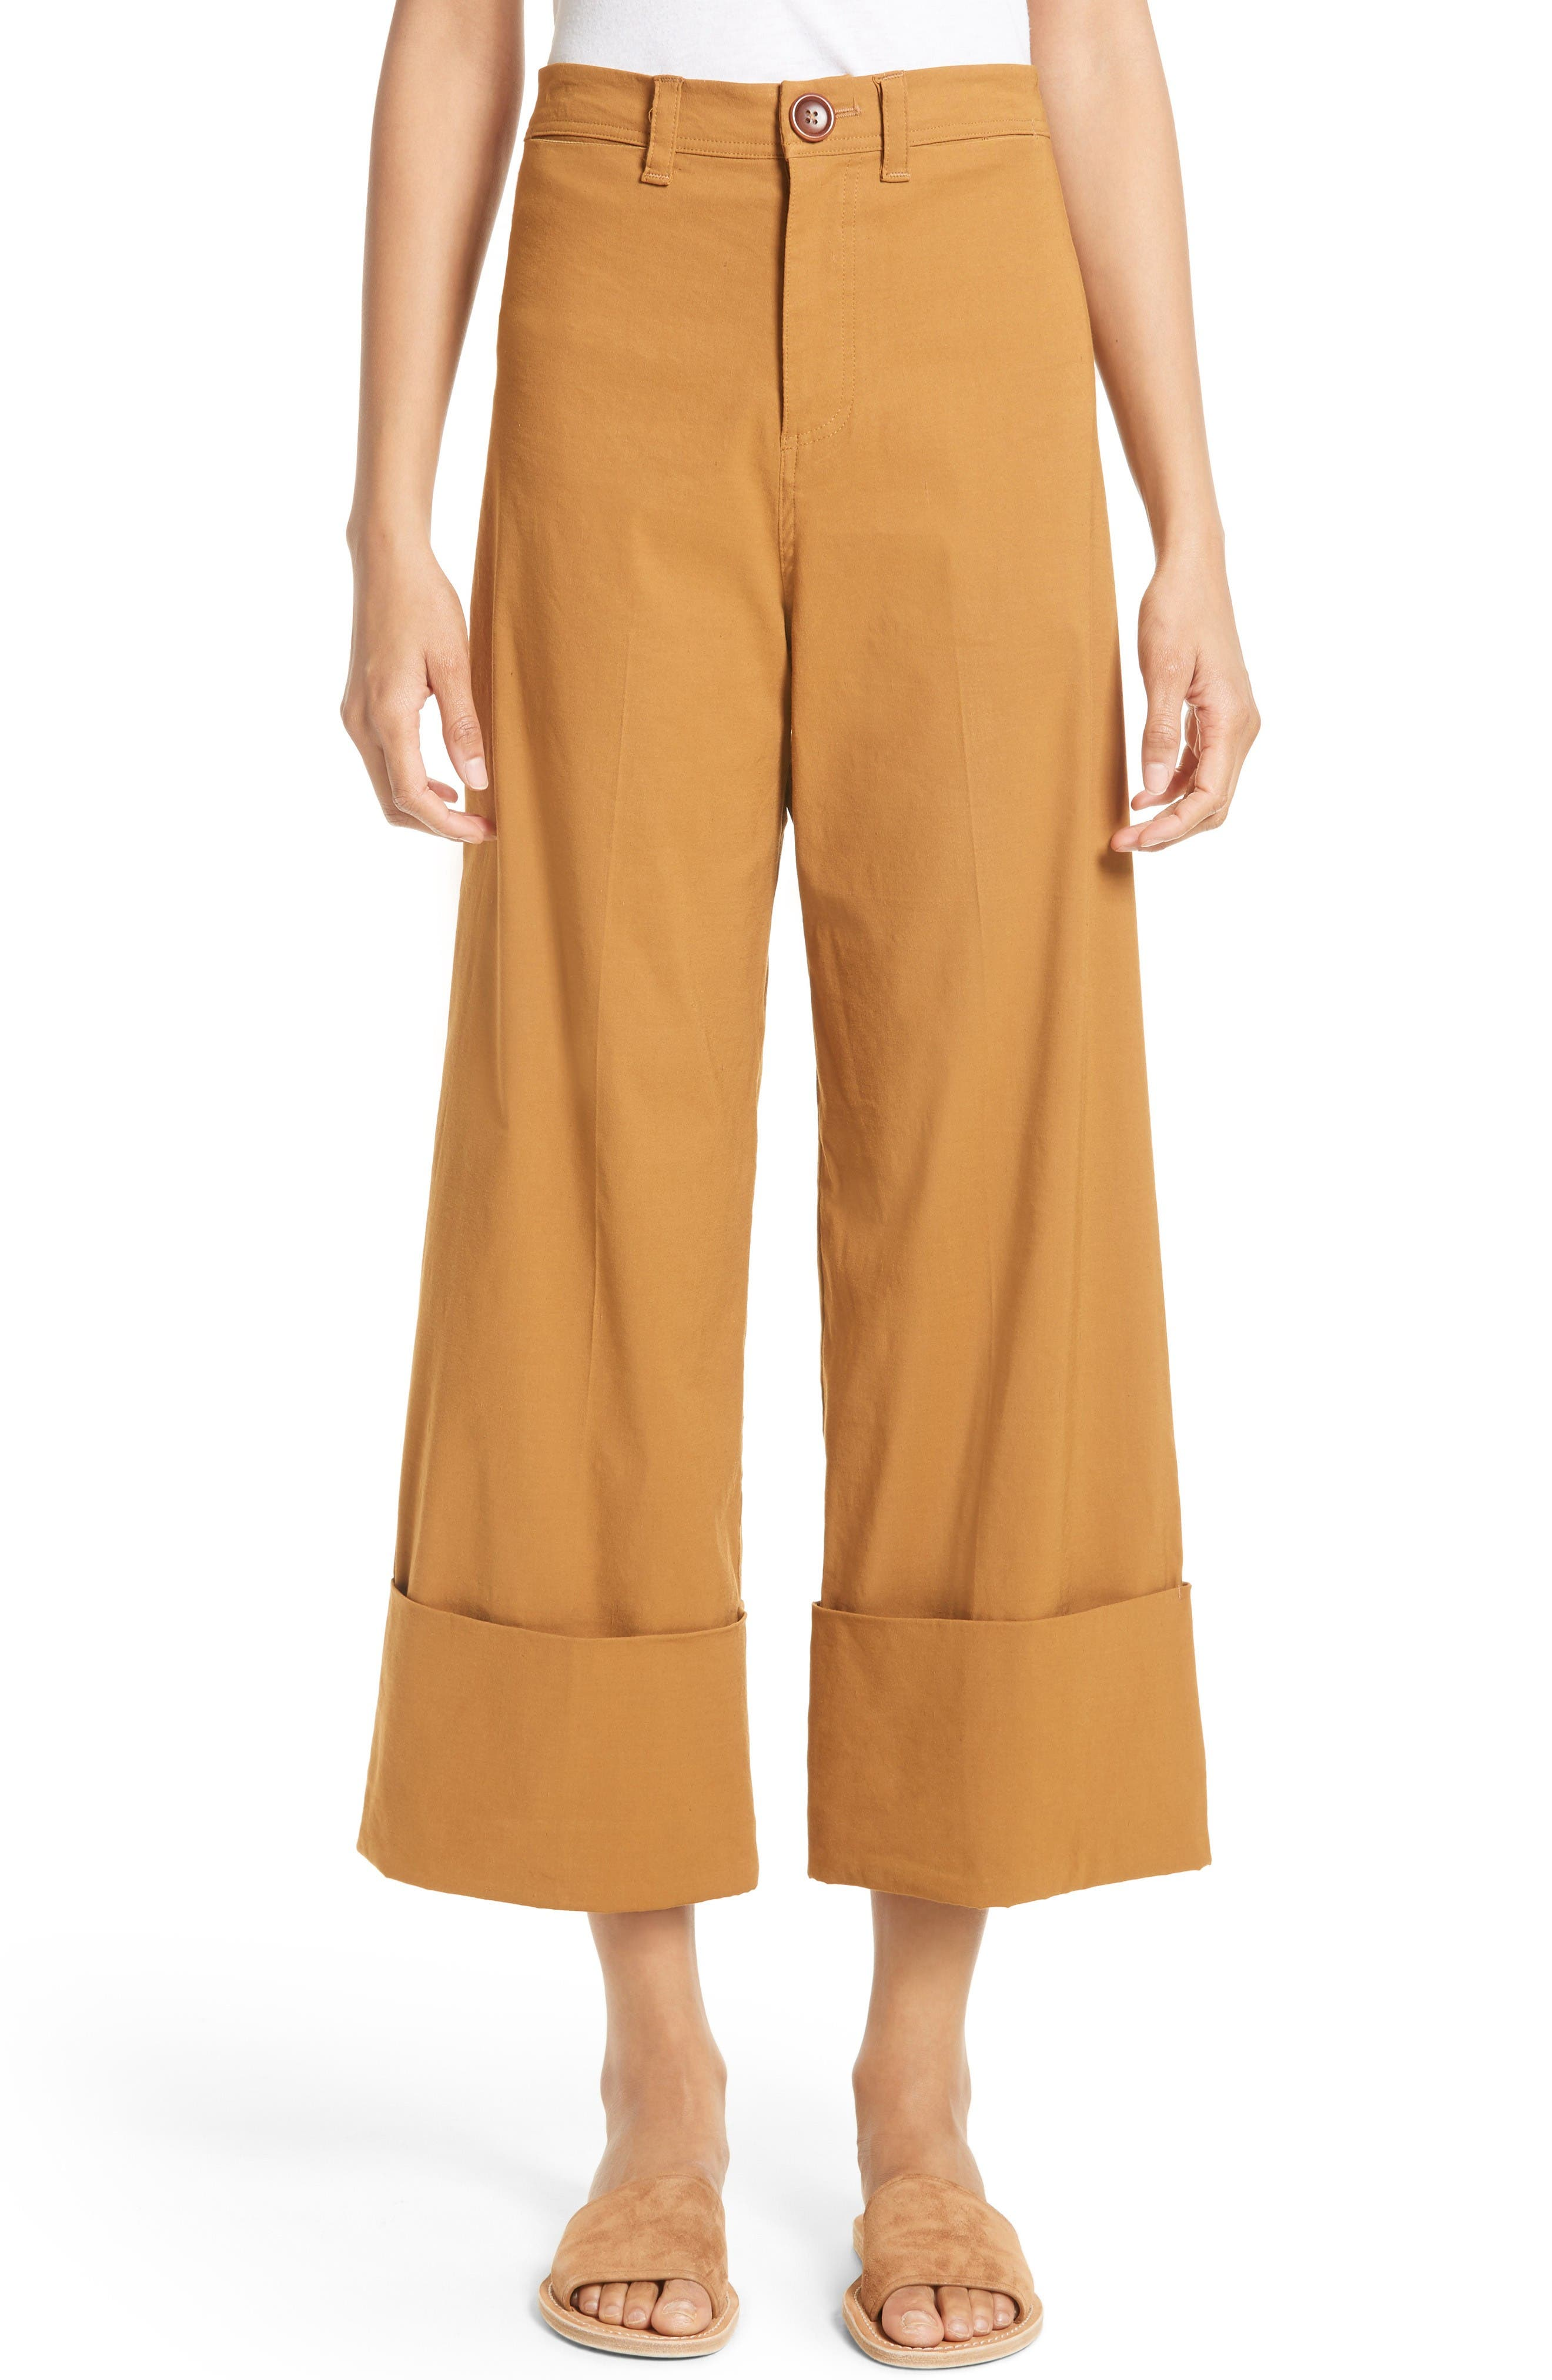 Sea Cuffed Crop Pants